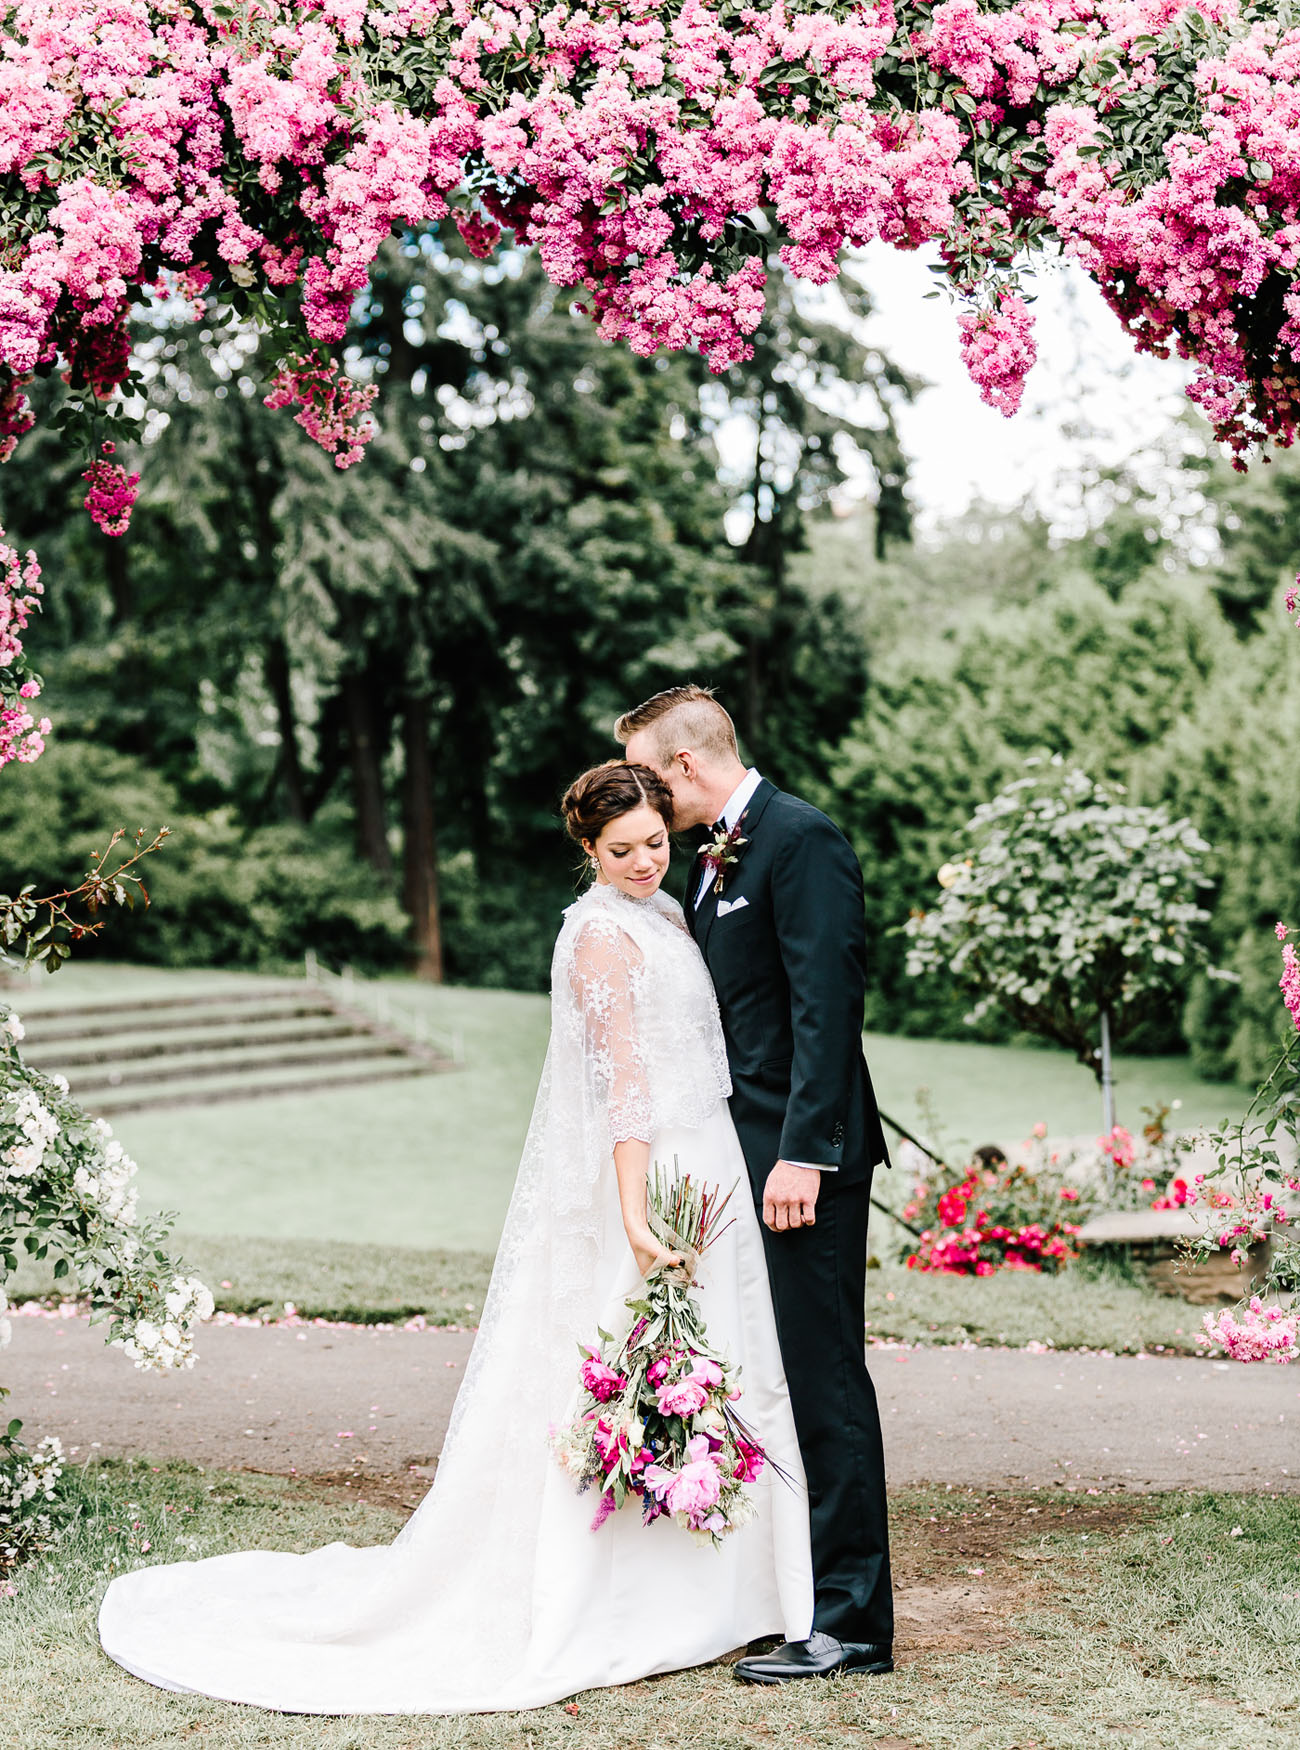 This lush floral wedding took place in Oregon, and the guests came from all over the country